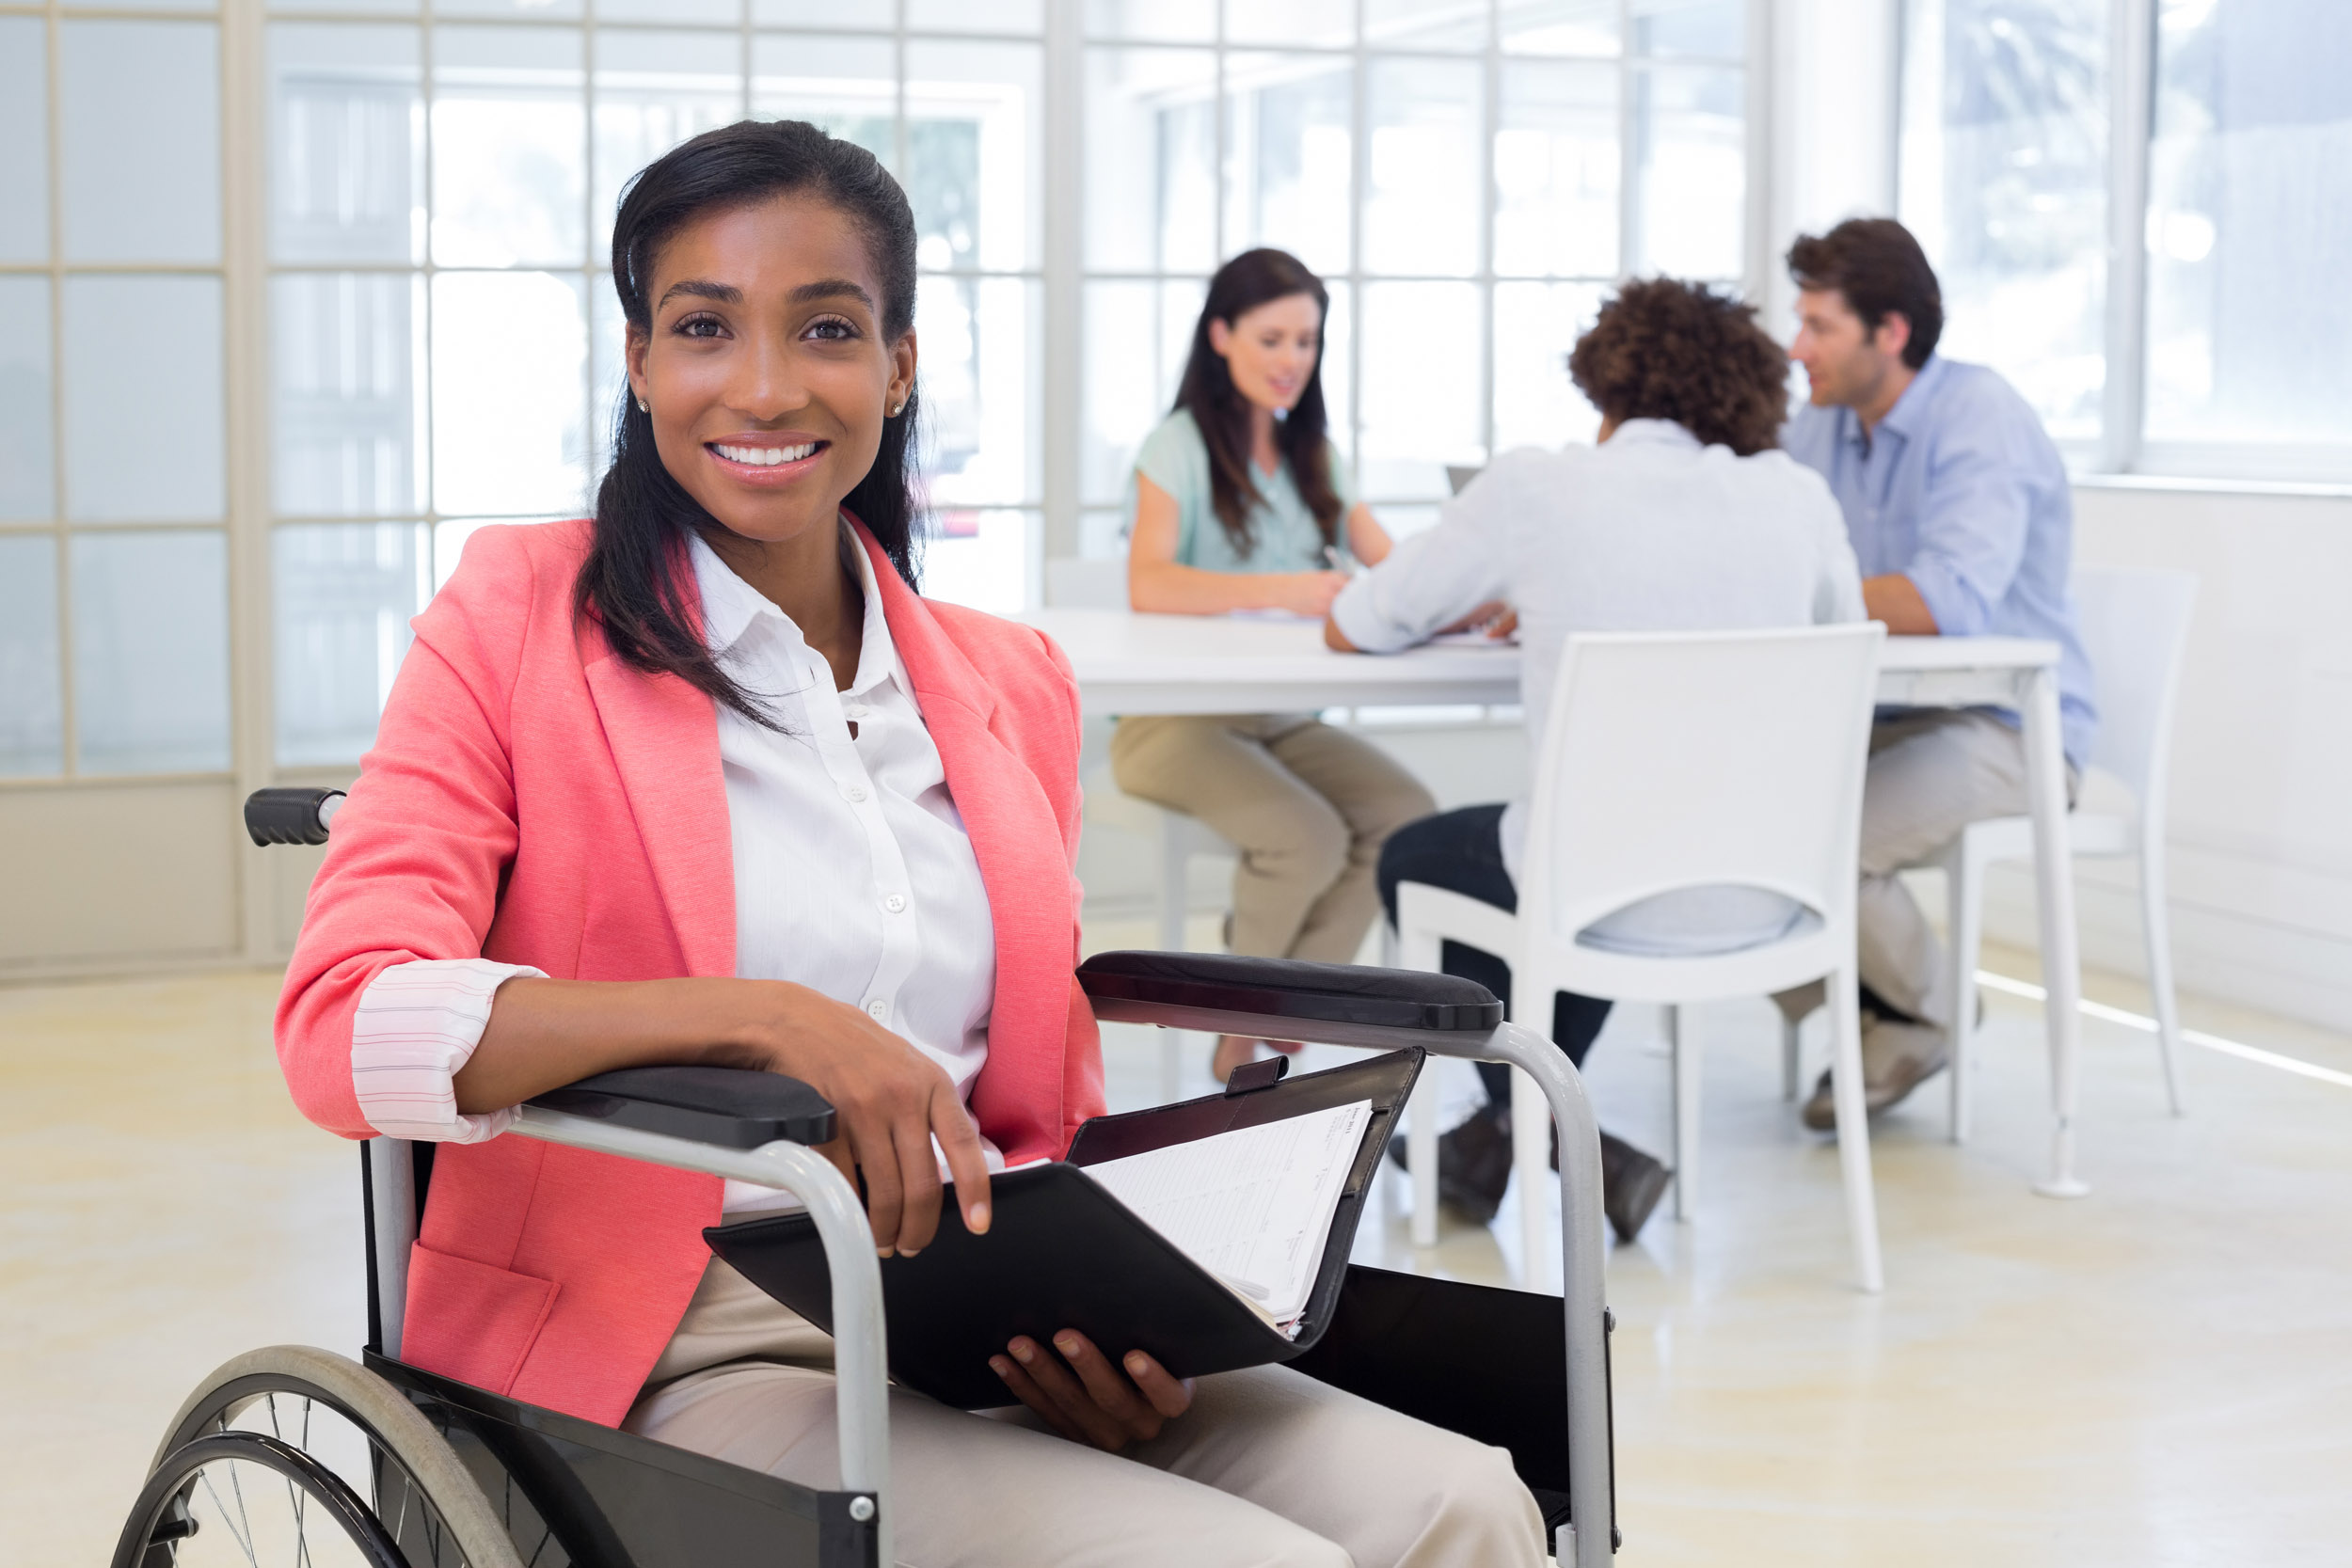 Businesswoman in wheelchair holding folder and smiling at camera in the office